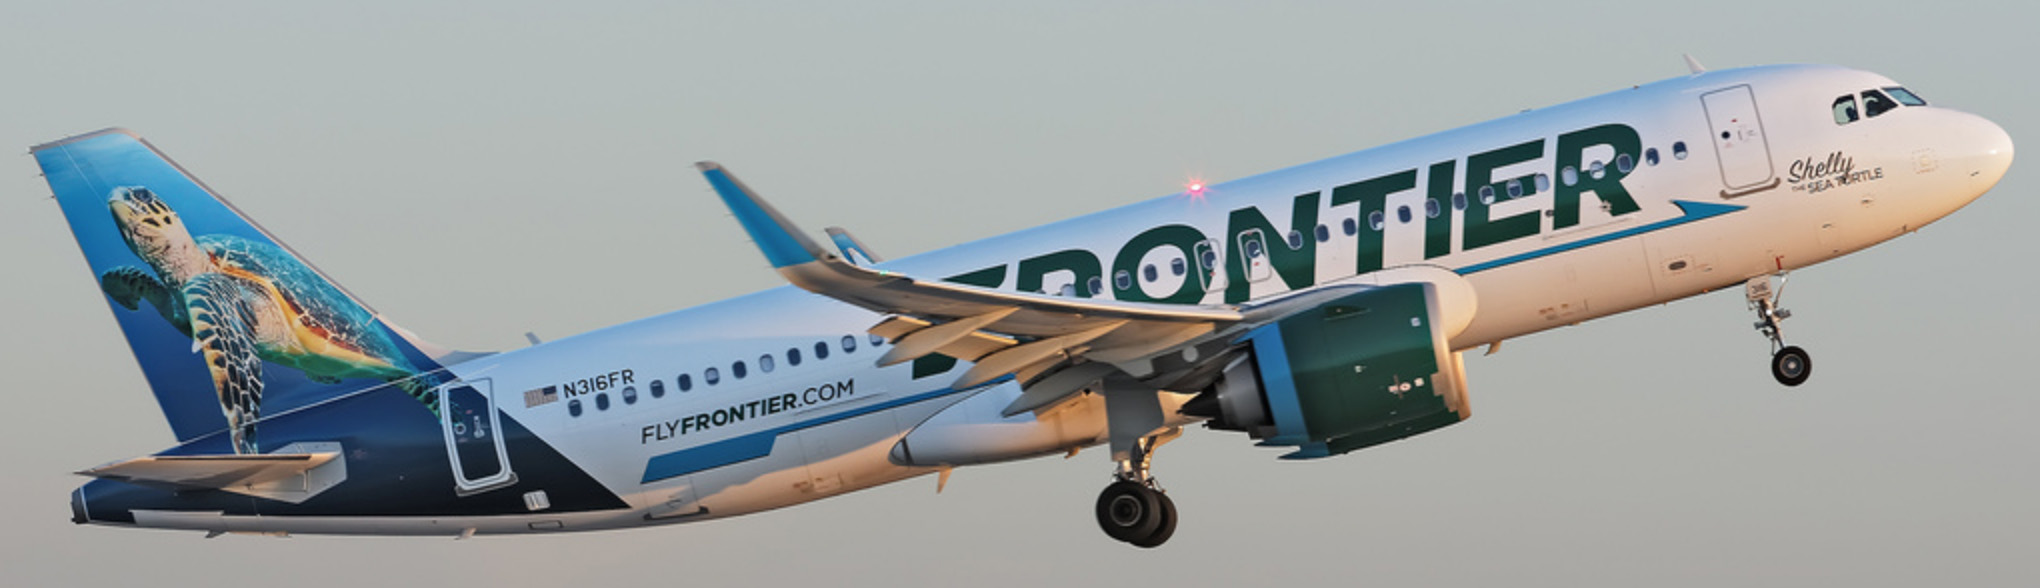 Frontier A320neo on initial climb out